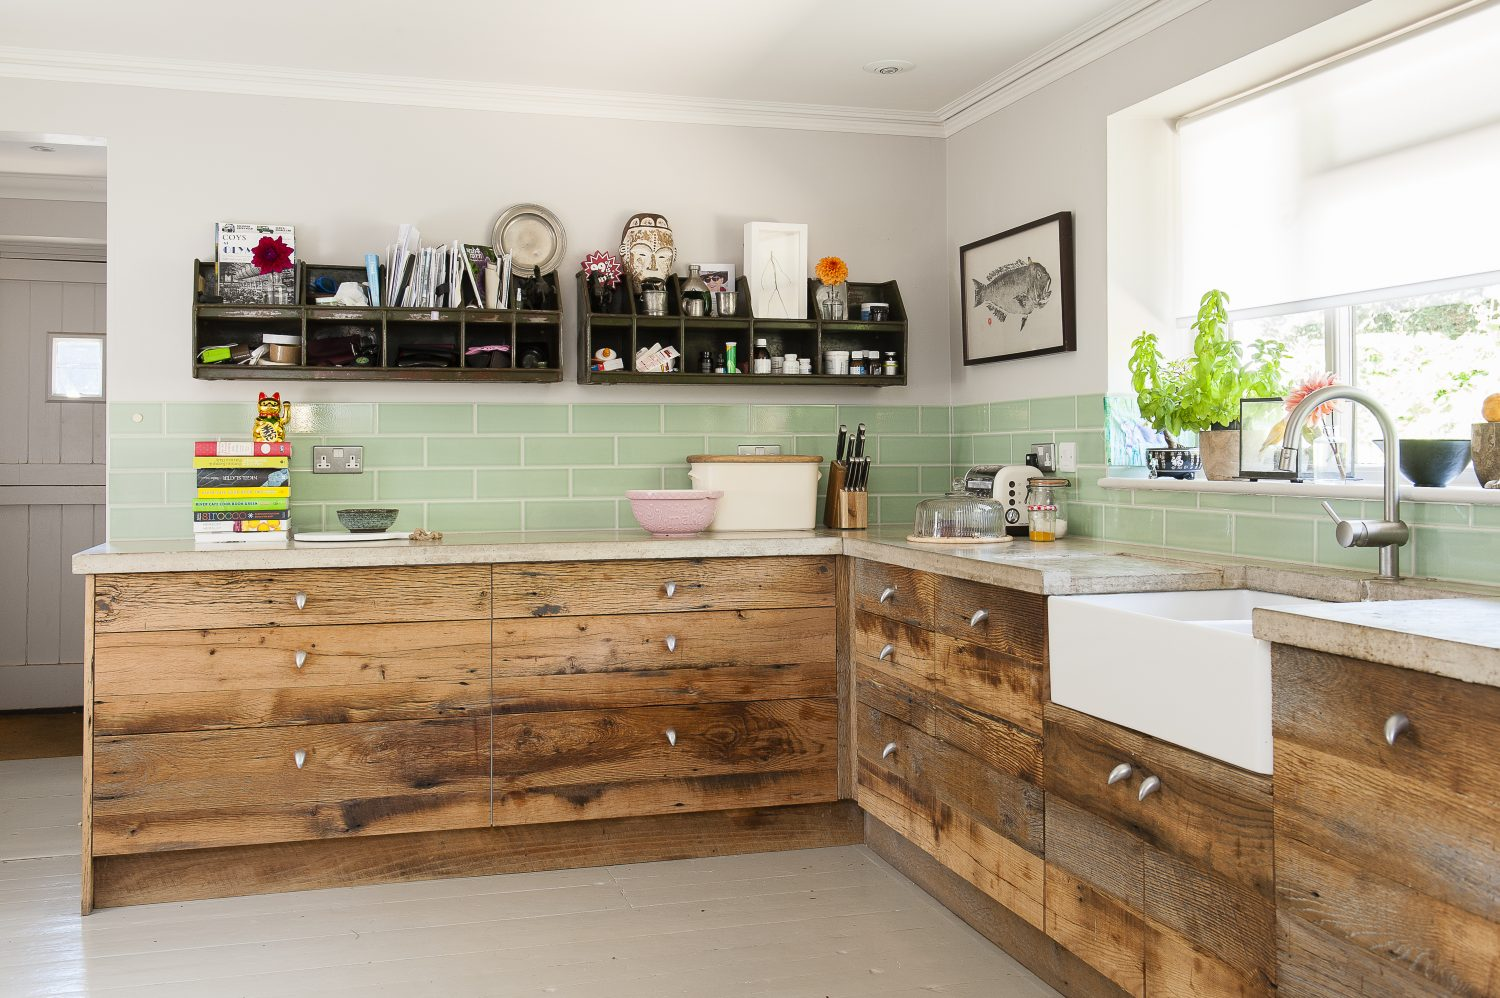 The couple put in a new kitchen with large drawers – instead of cupboards – fronted with American barn oak. The wood has been used to brilliant effect as facings on an off-the-peg kitchen, so it has a hand-built, rustic look